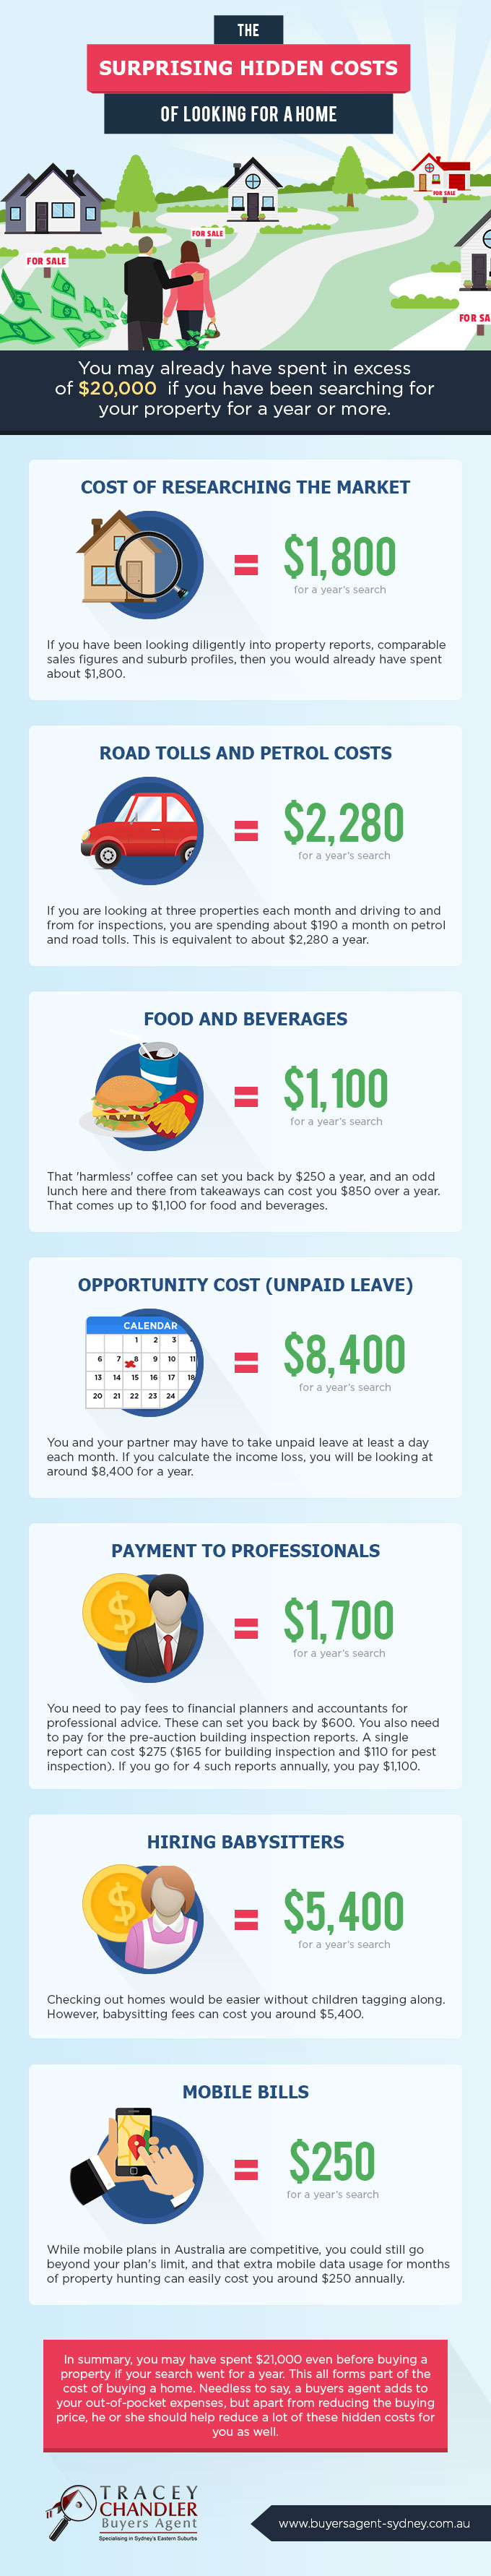 hidden costs of looking for a home infographic